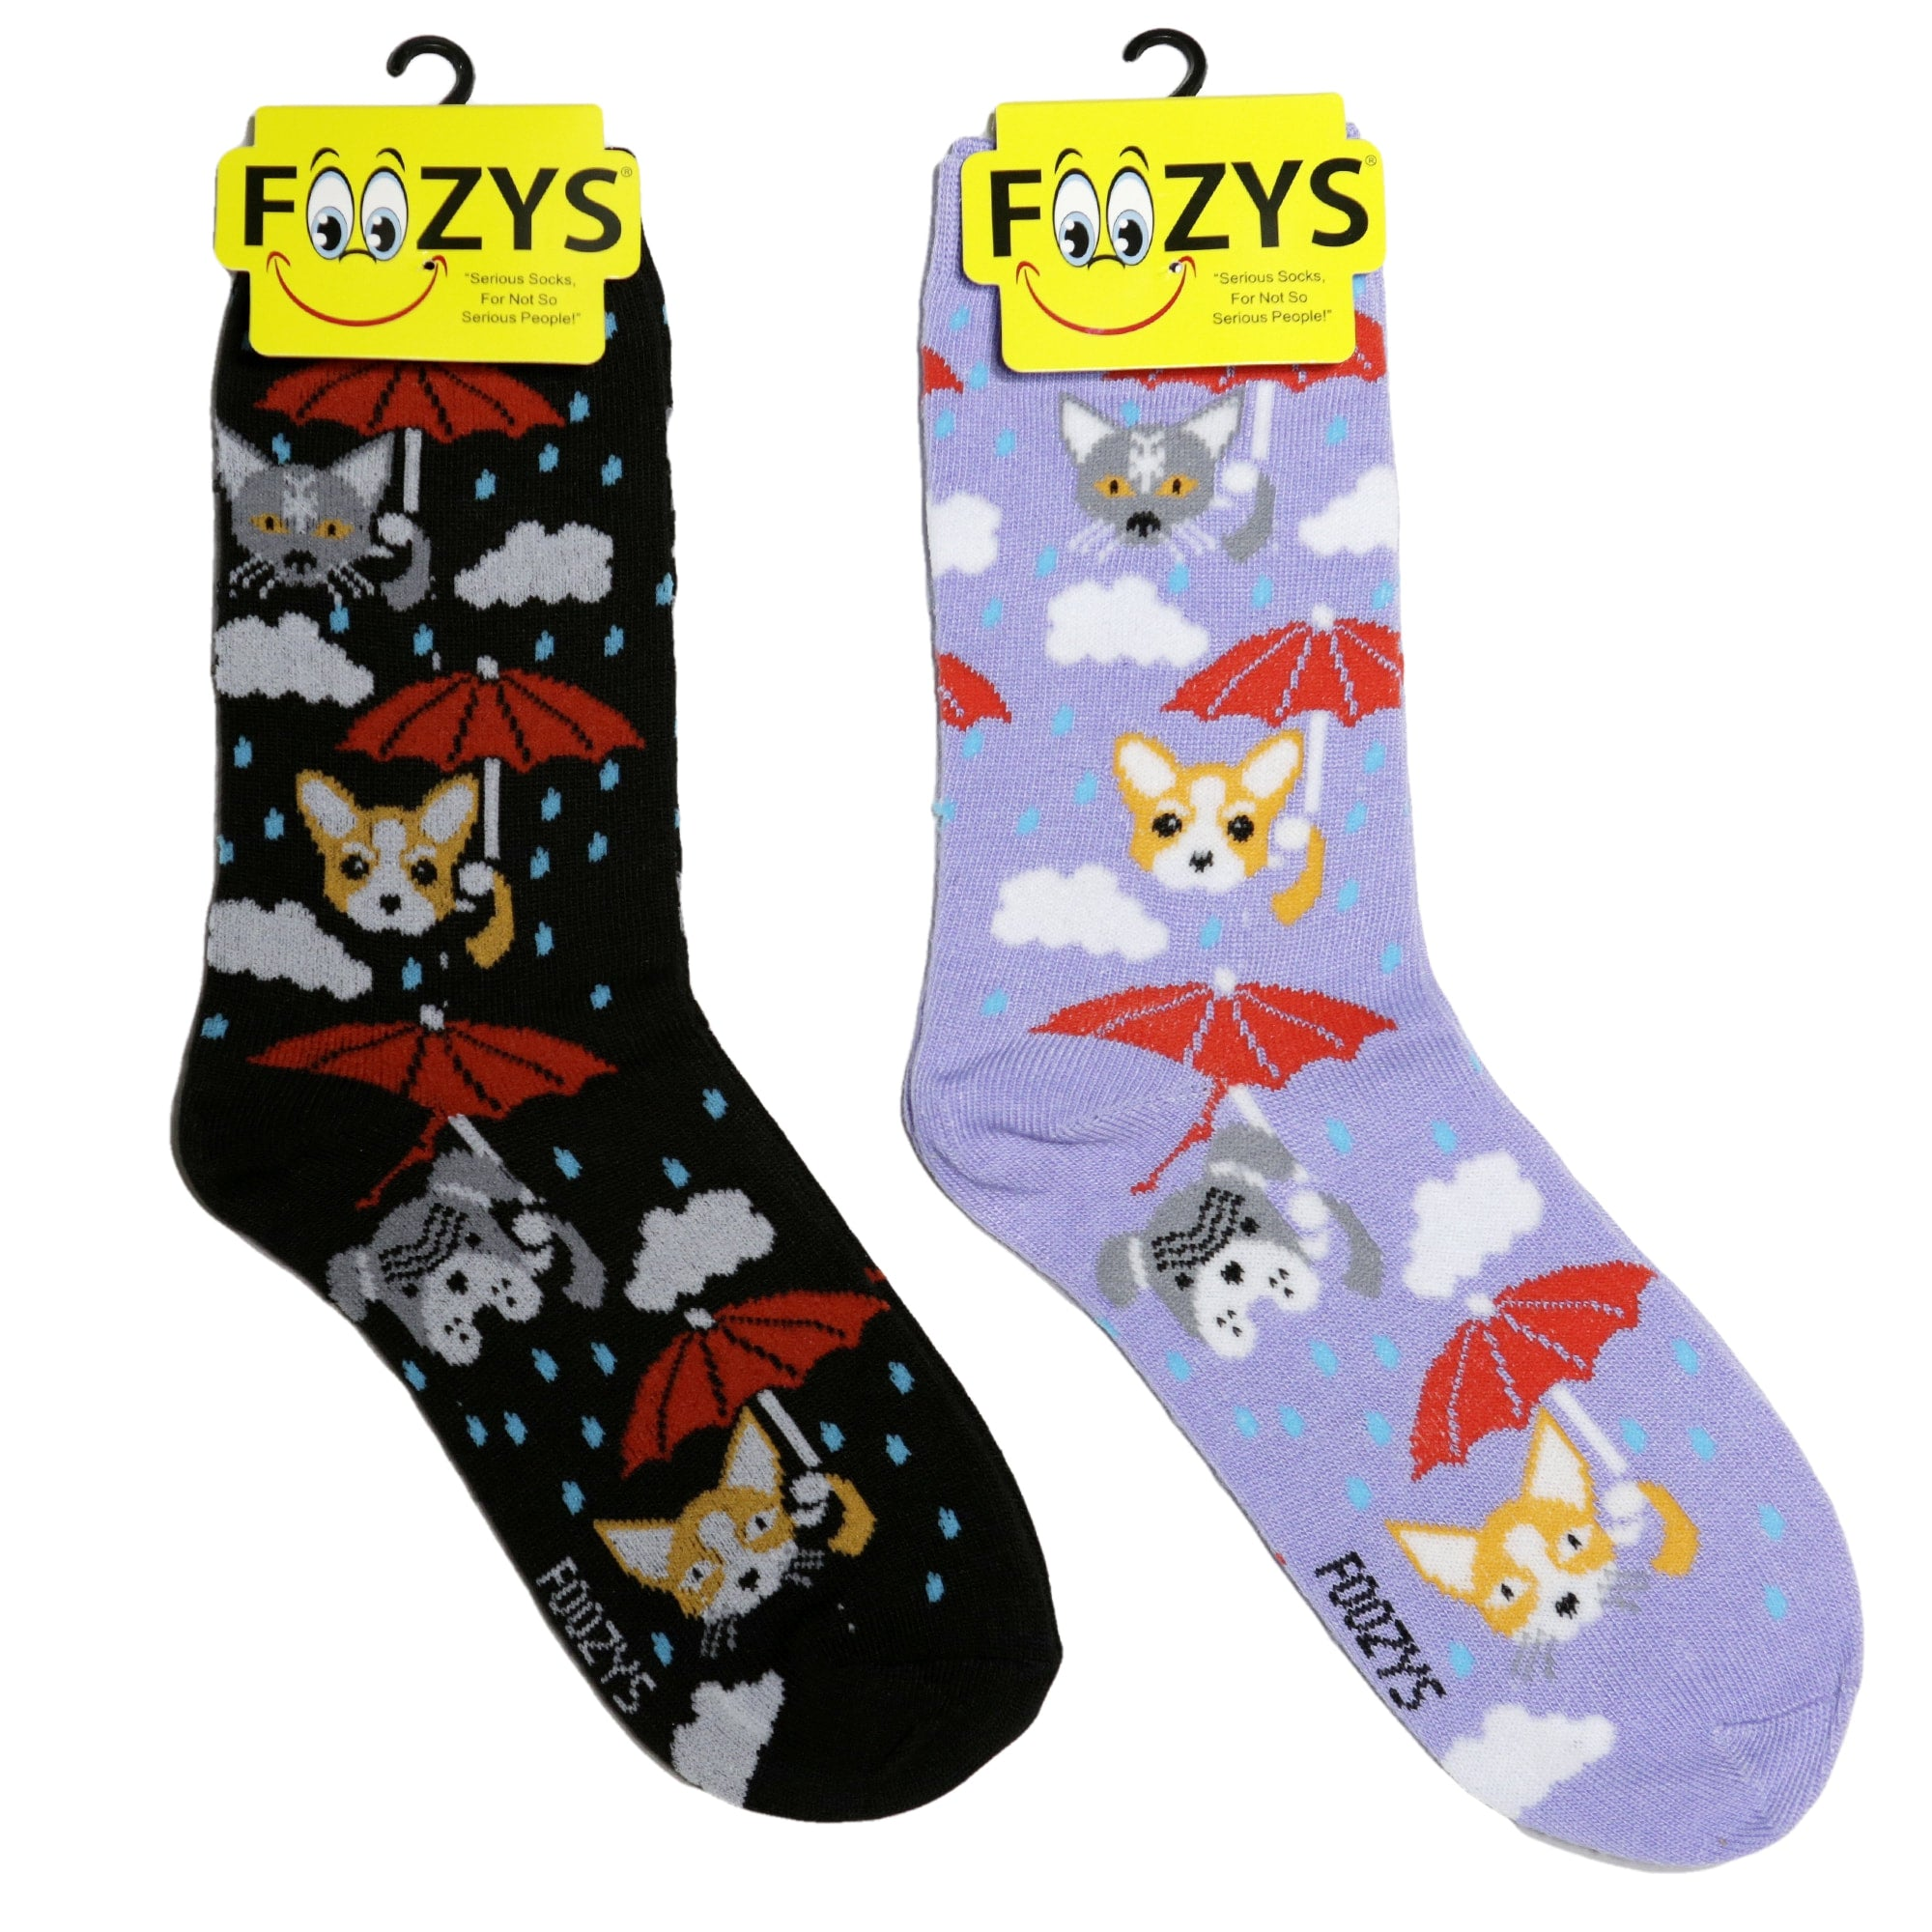 Foozys - FC-113: Raining Cats & Dogs